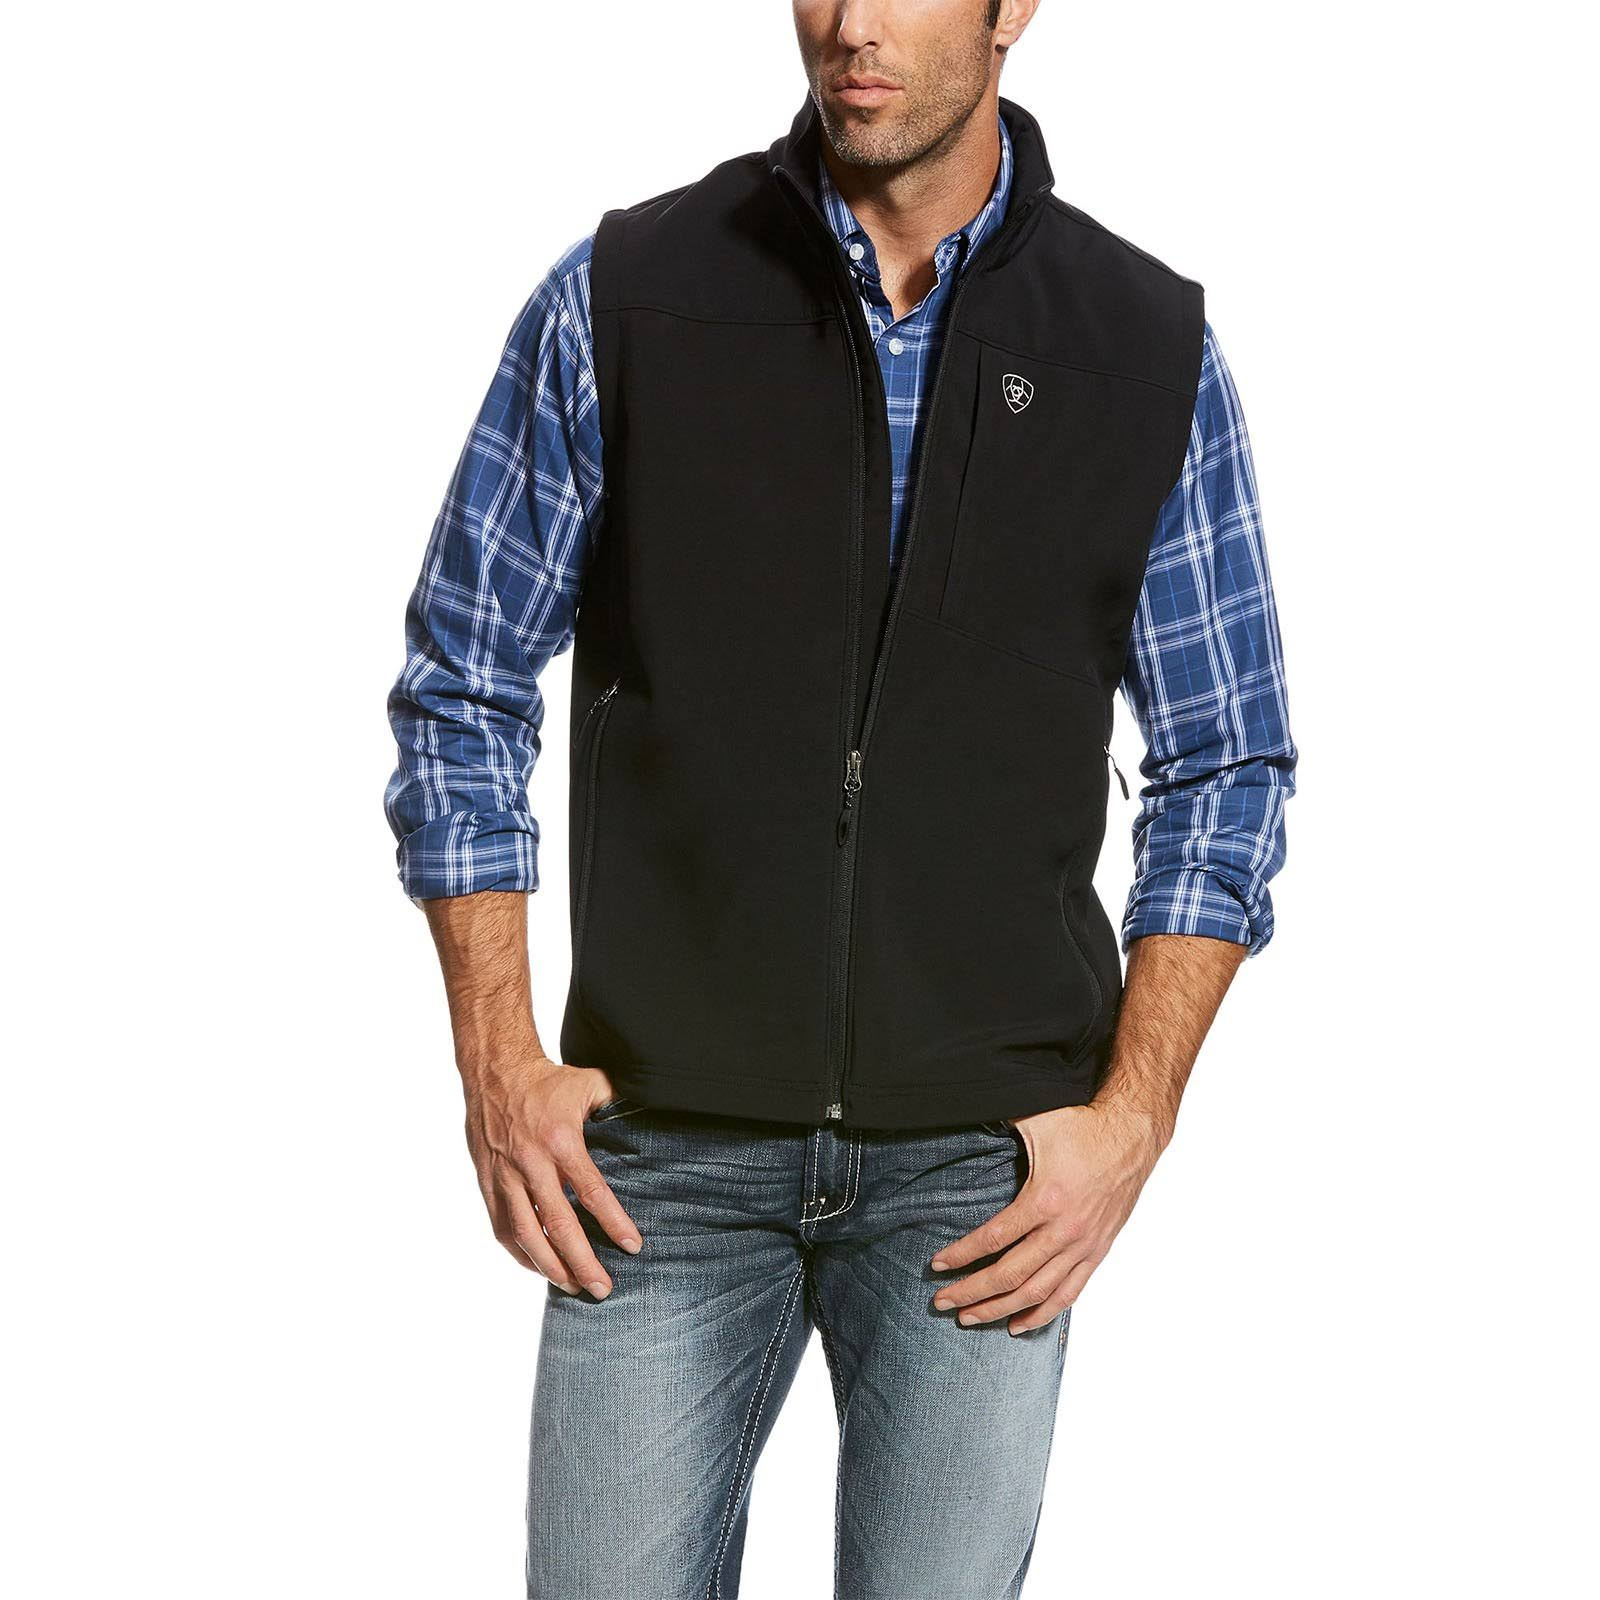 Men's Ariat Vernon 2 Softshell Vest